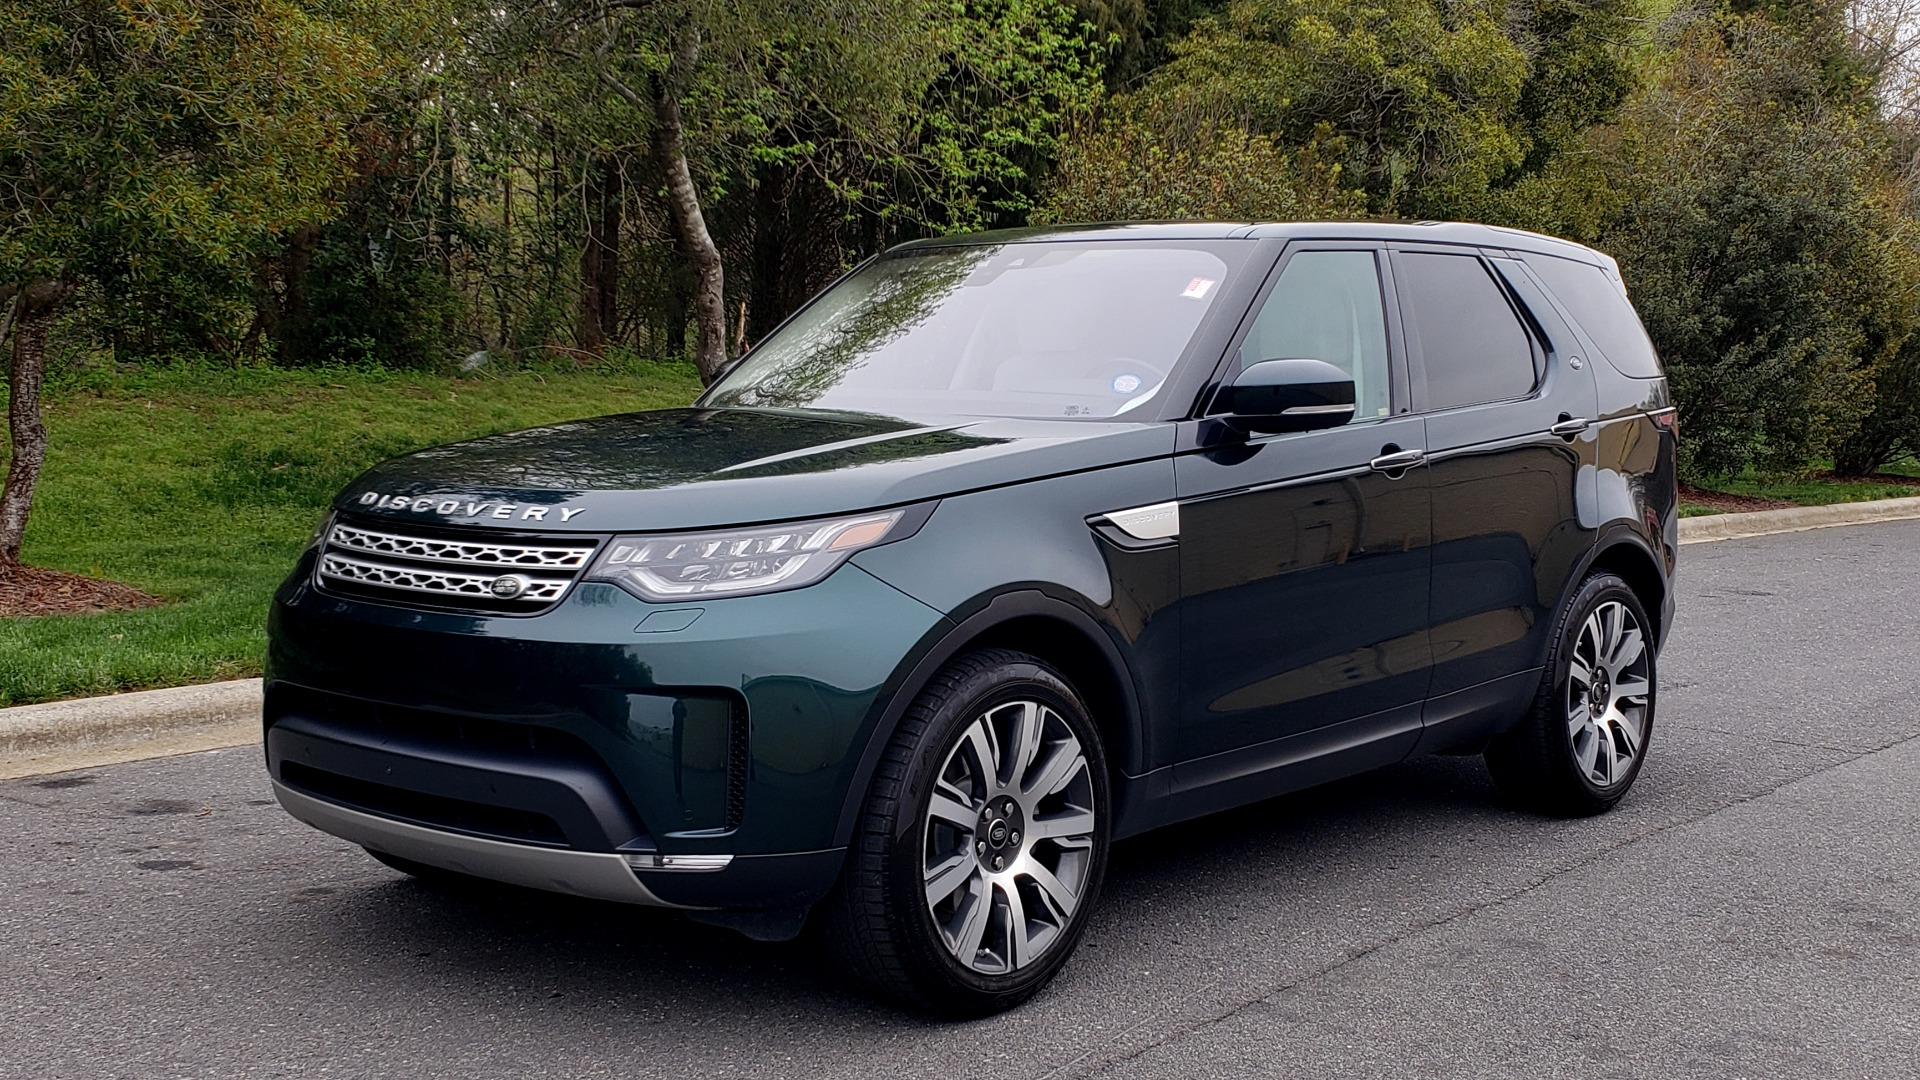 Used 2017 Land Rover DISCOVERY HSE LUXURY / 4WD / NAV / VISION ASST / DRIVE PKG / MERIDIAN for sale Sold at Formula Imports in Charlotte NC 28227 1